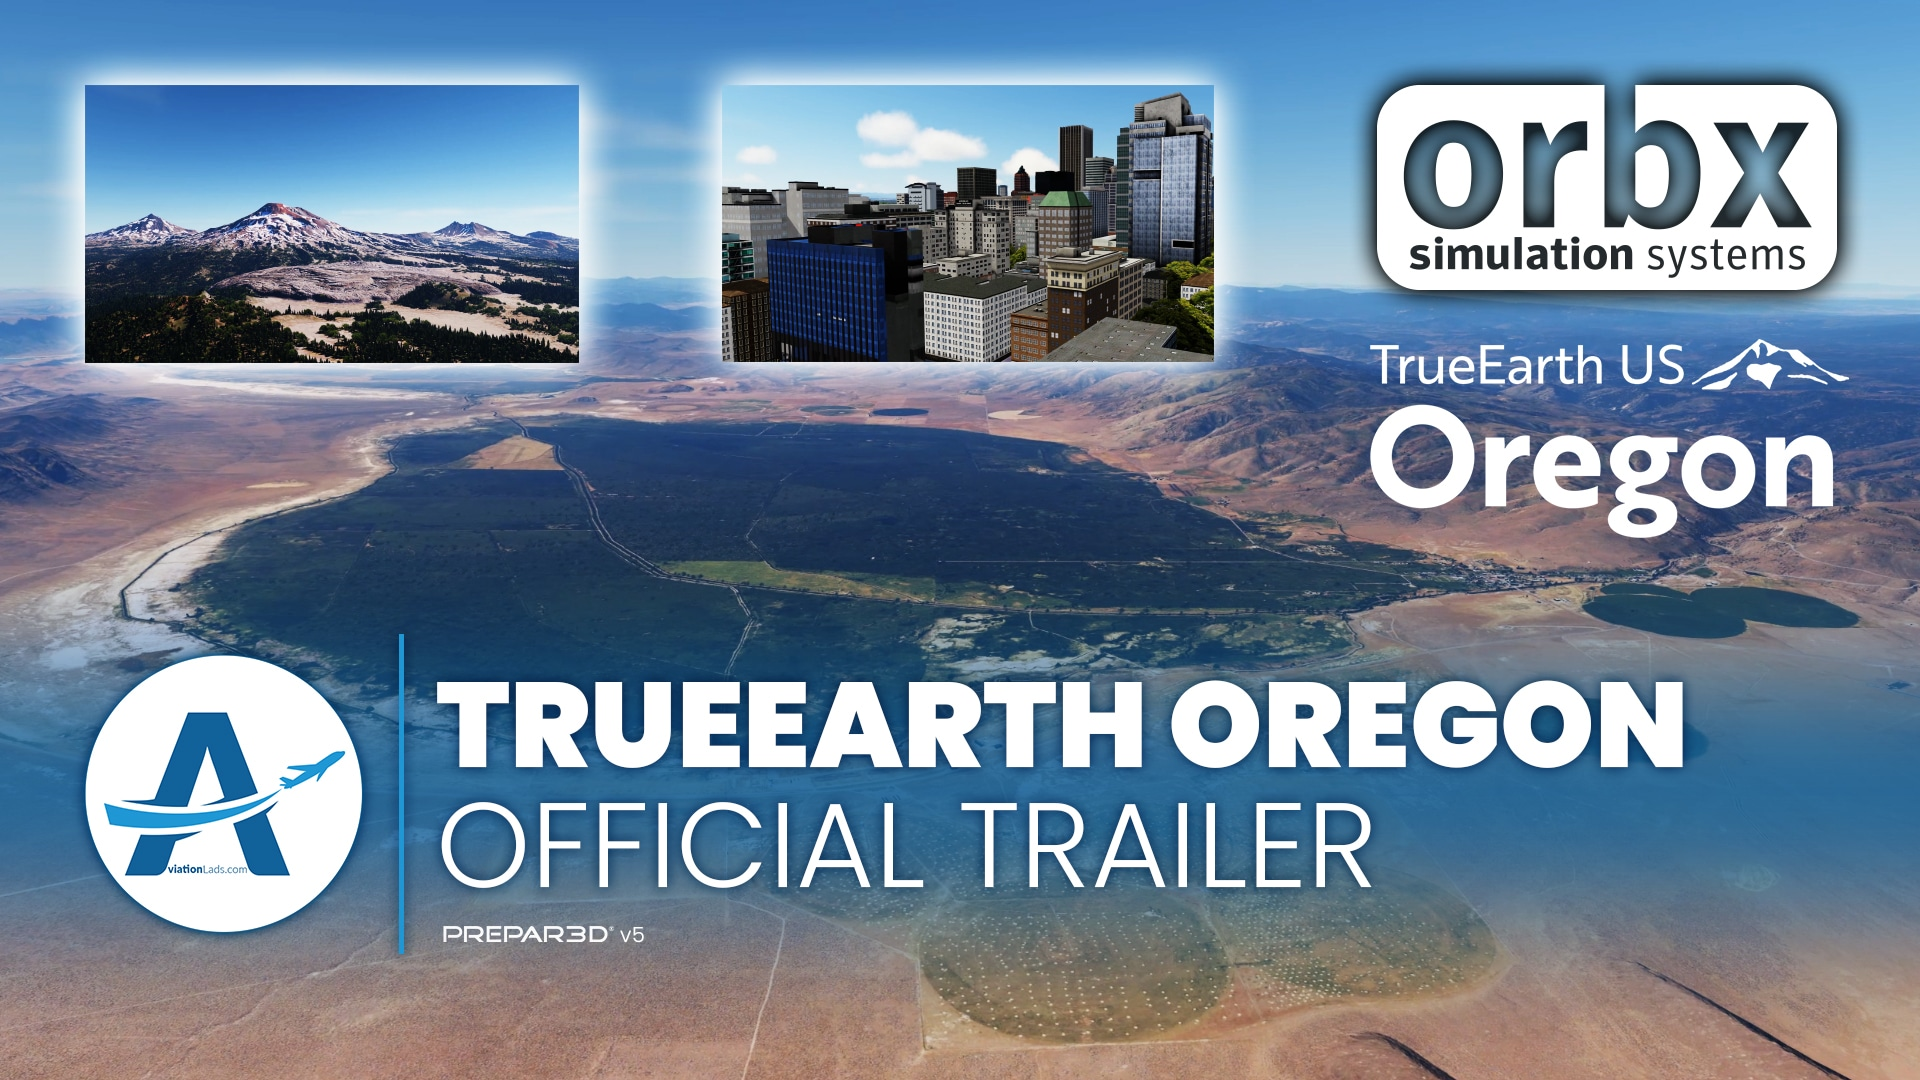 [TRAILER] ORBX – TrueEarth Oregon